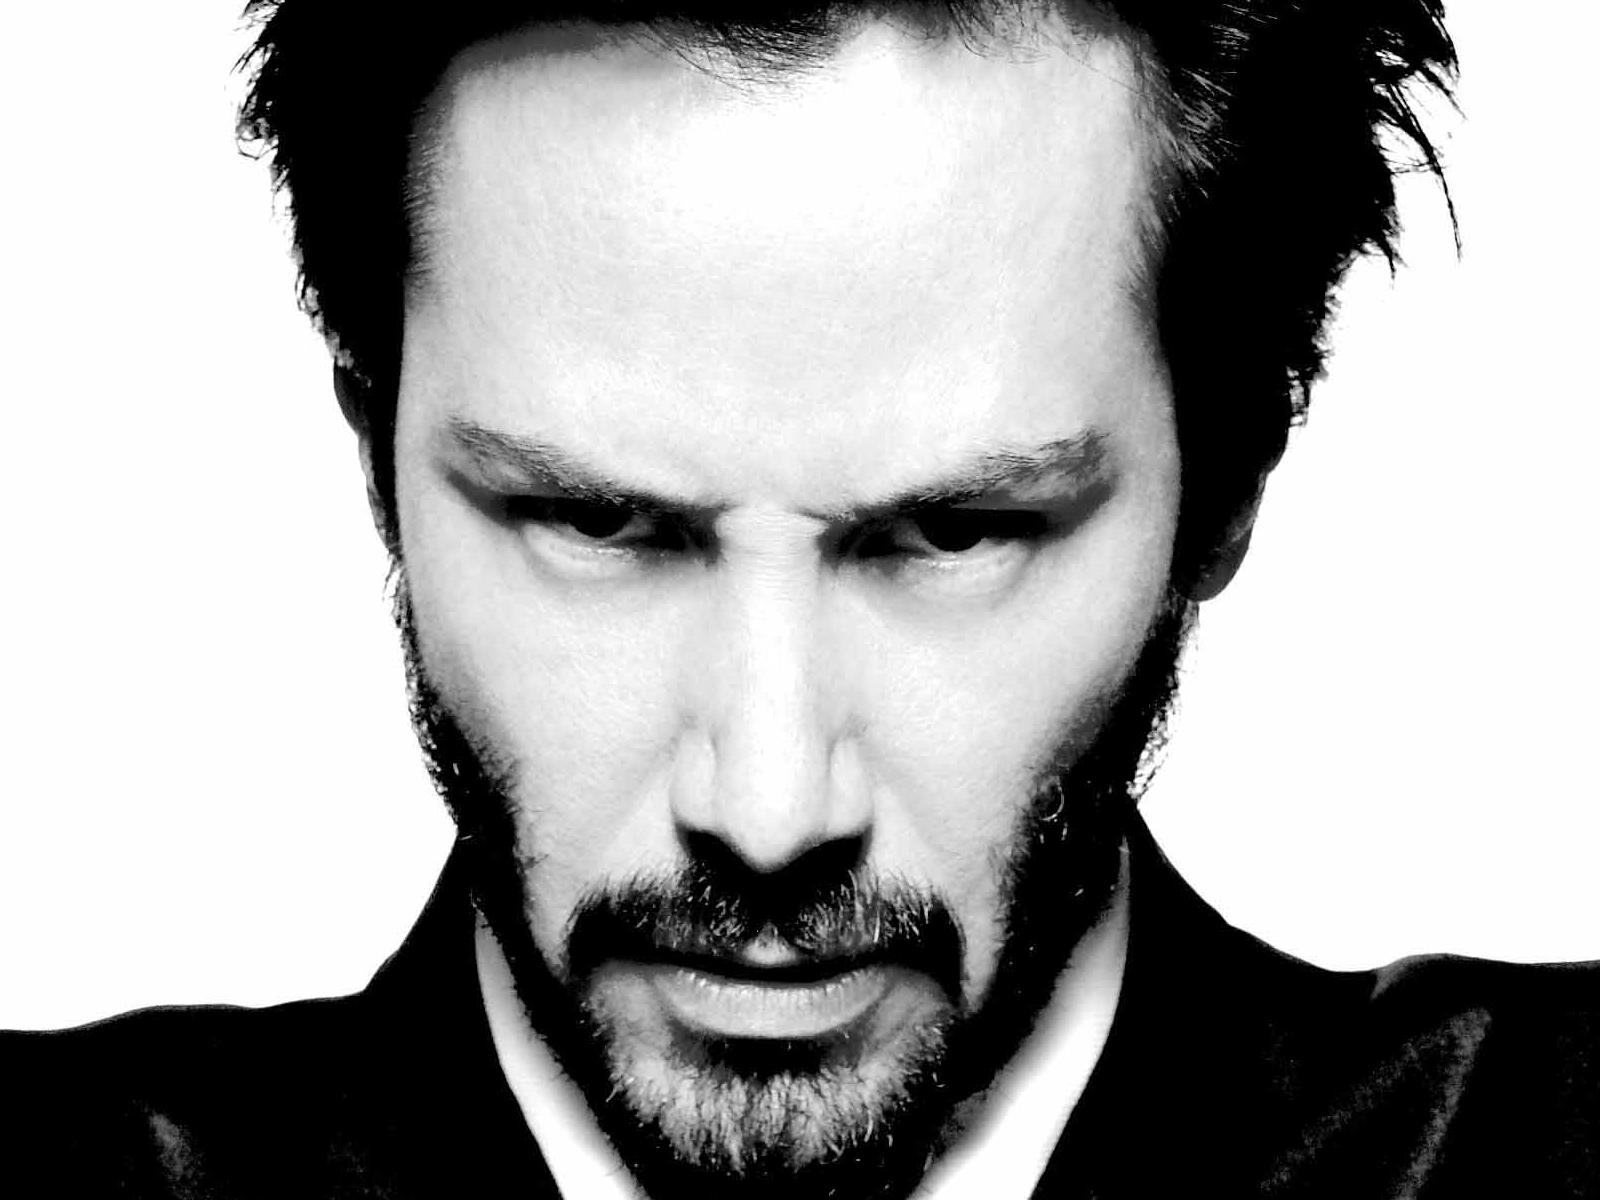 Keanu Reeves Wallpaper...